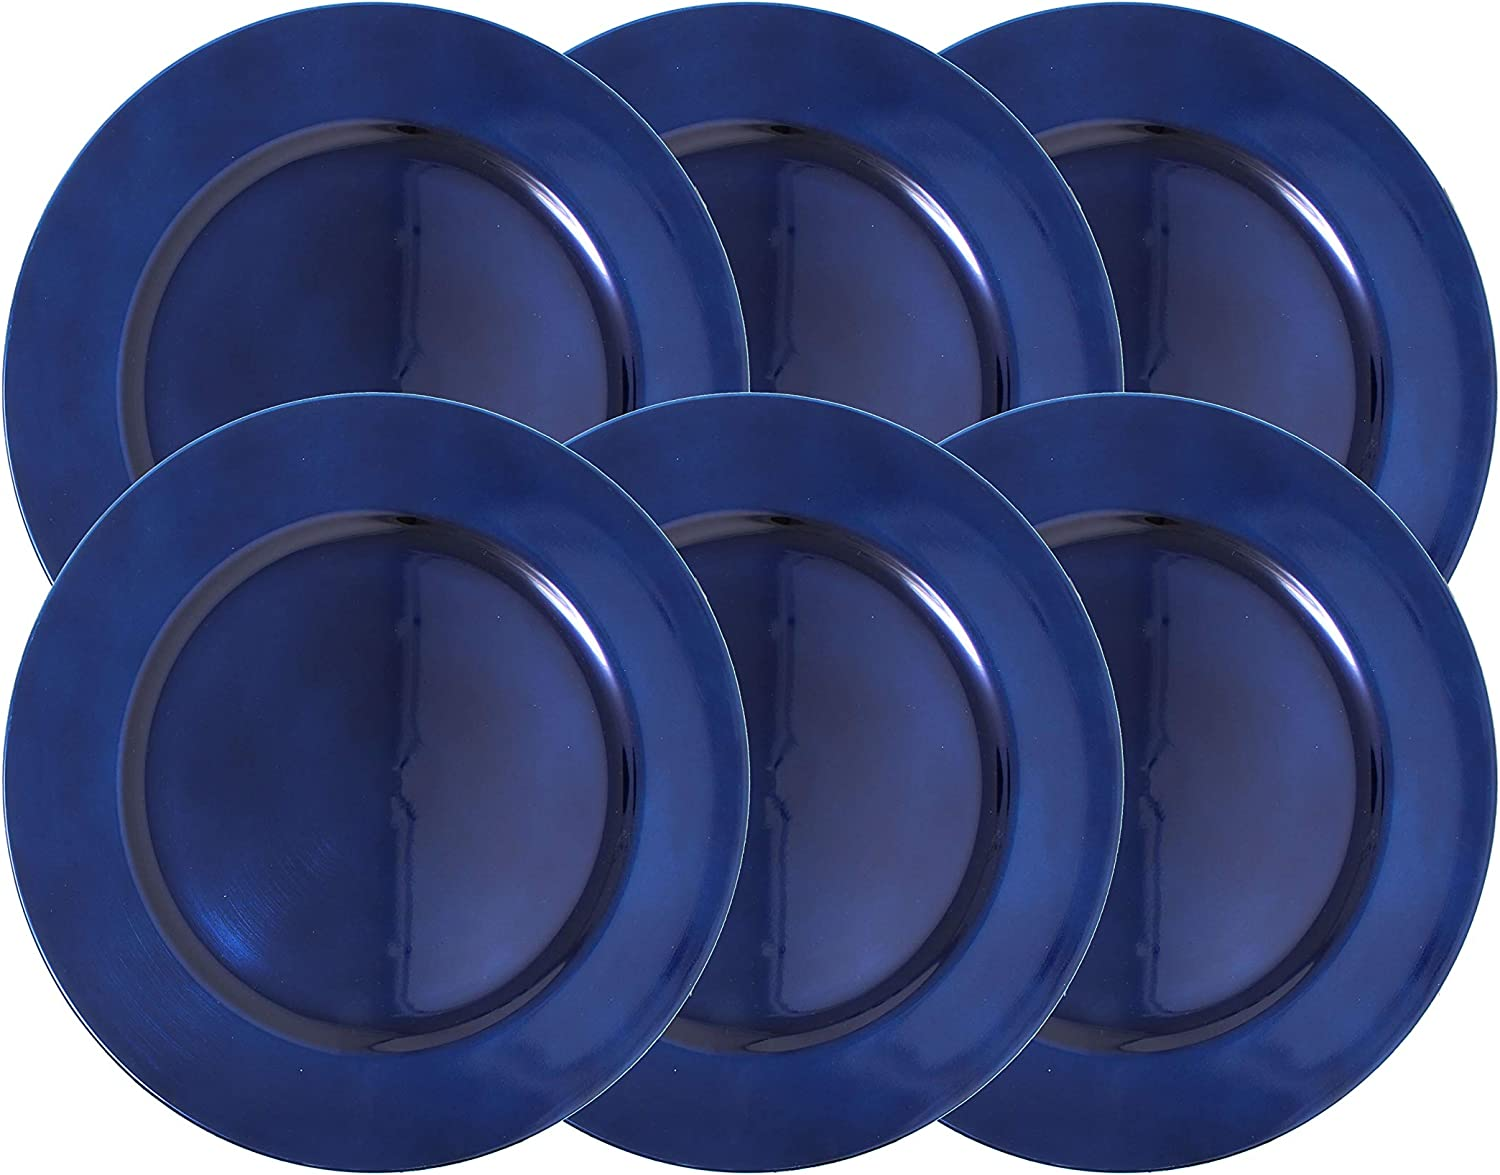 Set of 6 Coral Made of Thick Plastic Metallic Foil Charger Plates